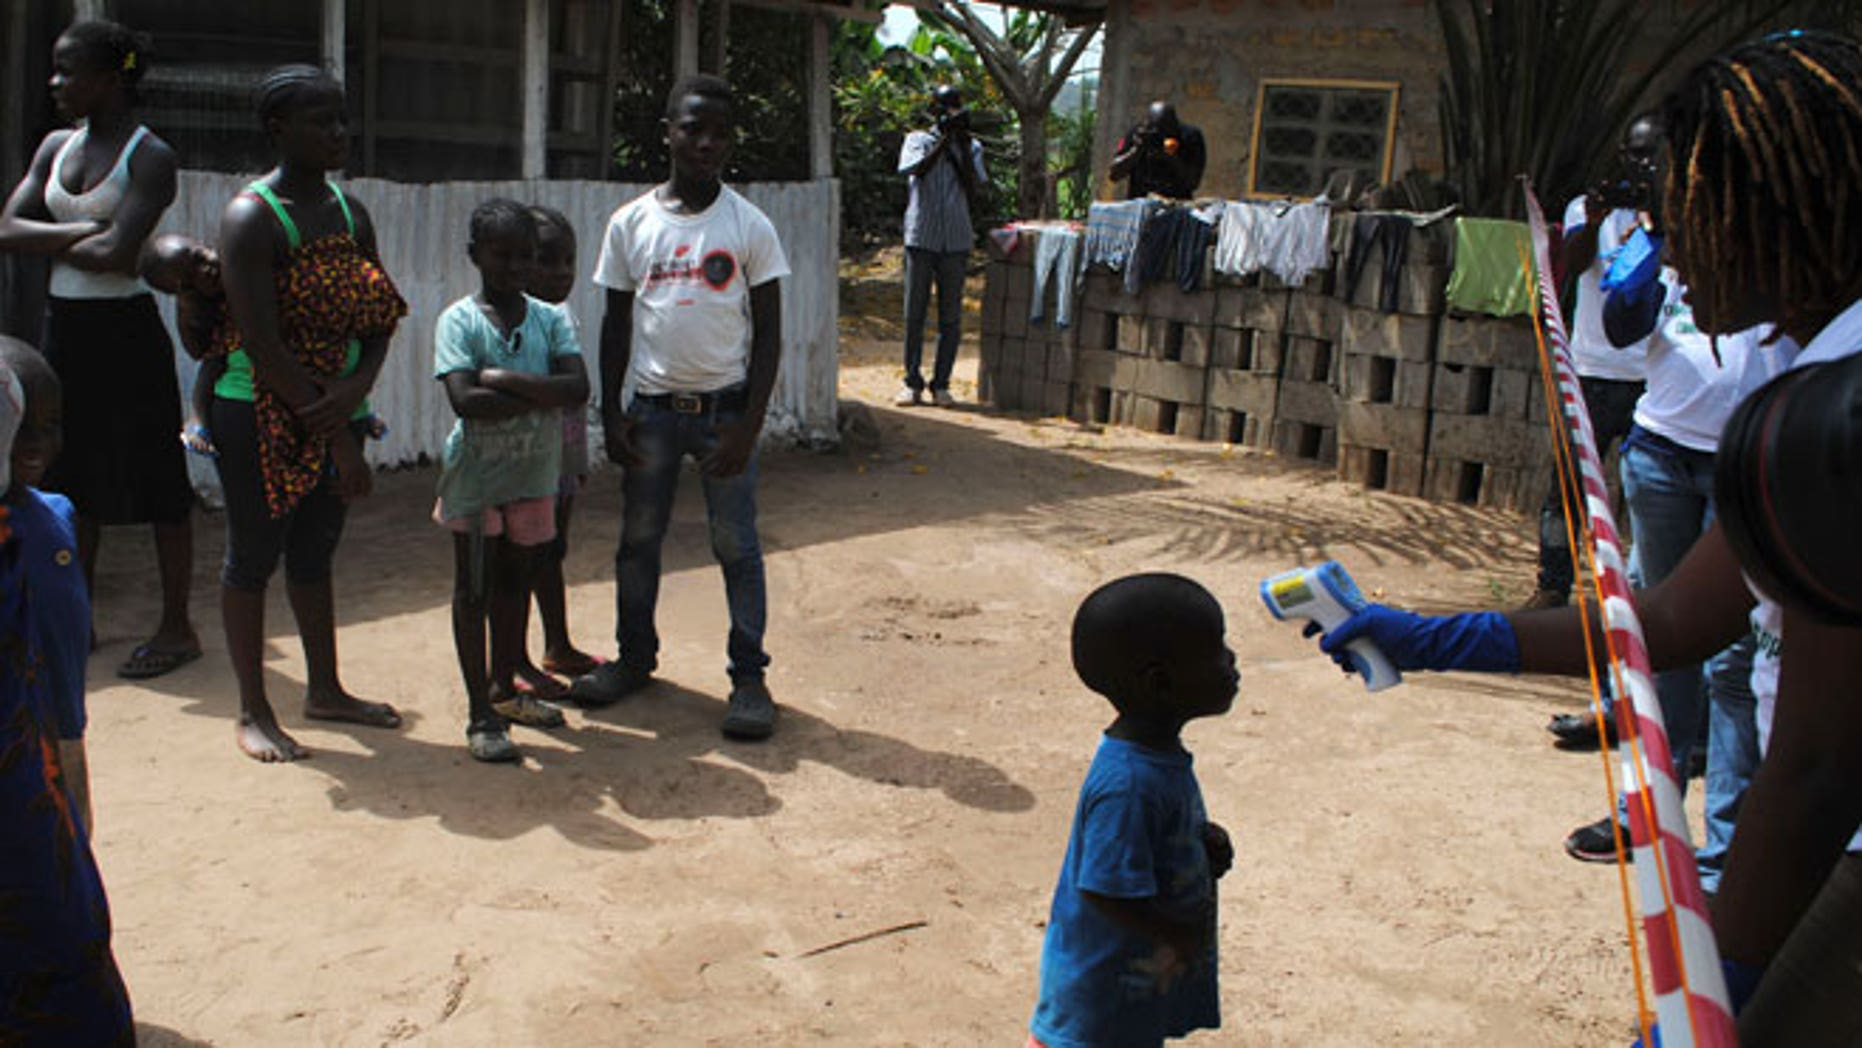 Health workers take the temperature of a boy who came in contact with a woman who died of Ebola virus in the Paynesville neighborhood of Monrovia, Liberia, January 21, 2015.